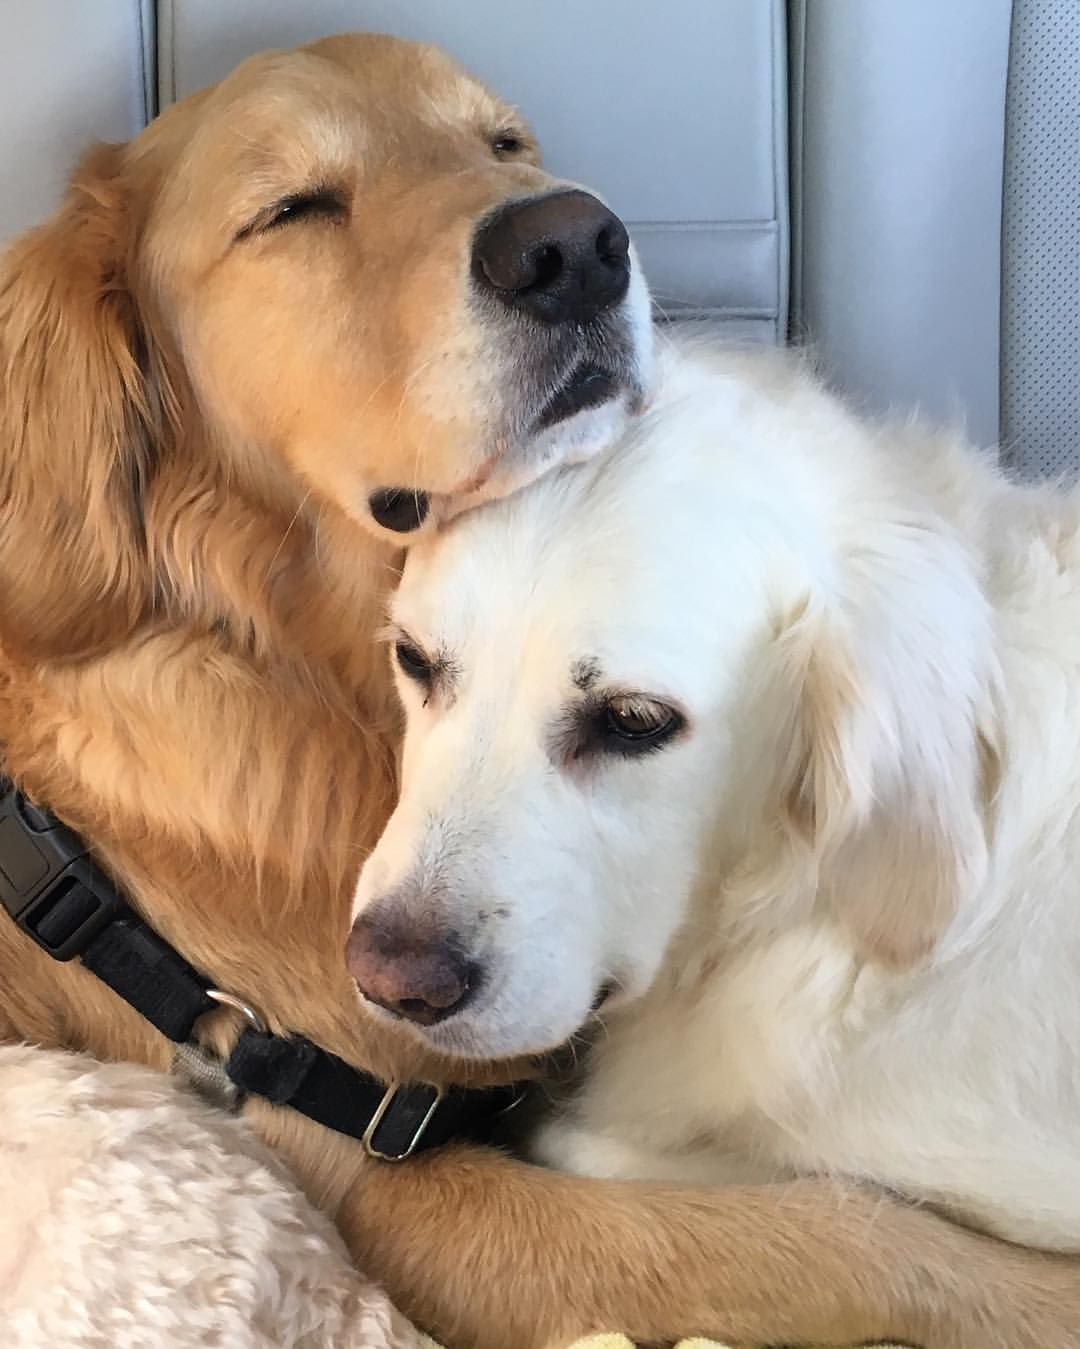 Puppy Hugs Puppy Hug Smiling Dogs Golden Dog